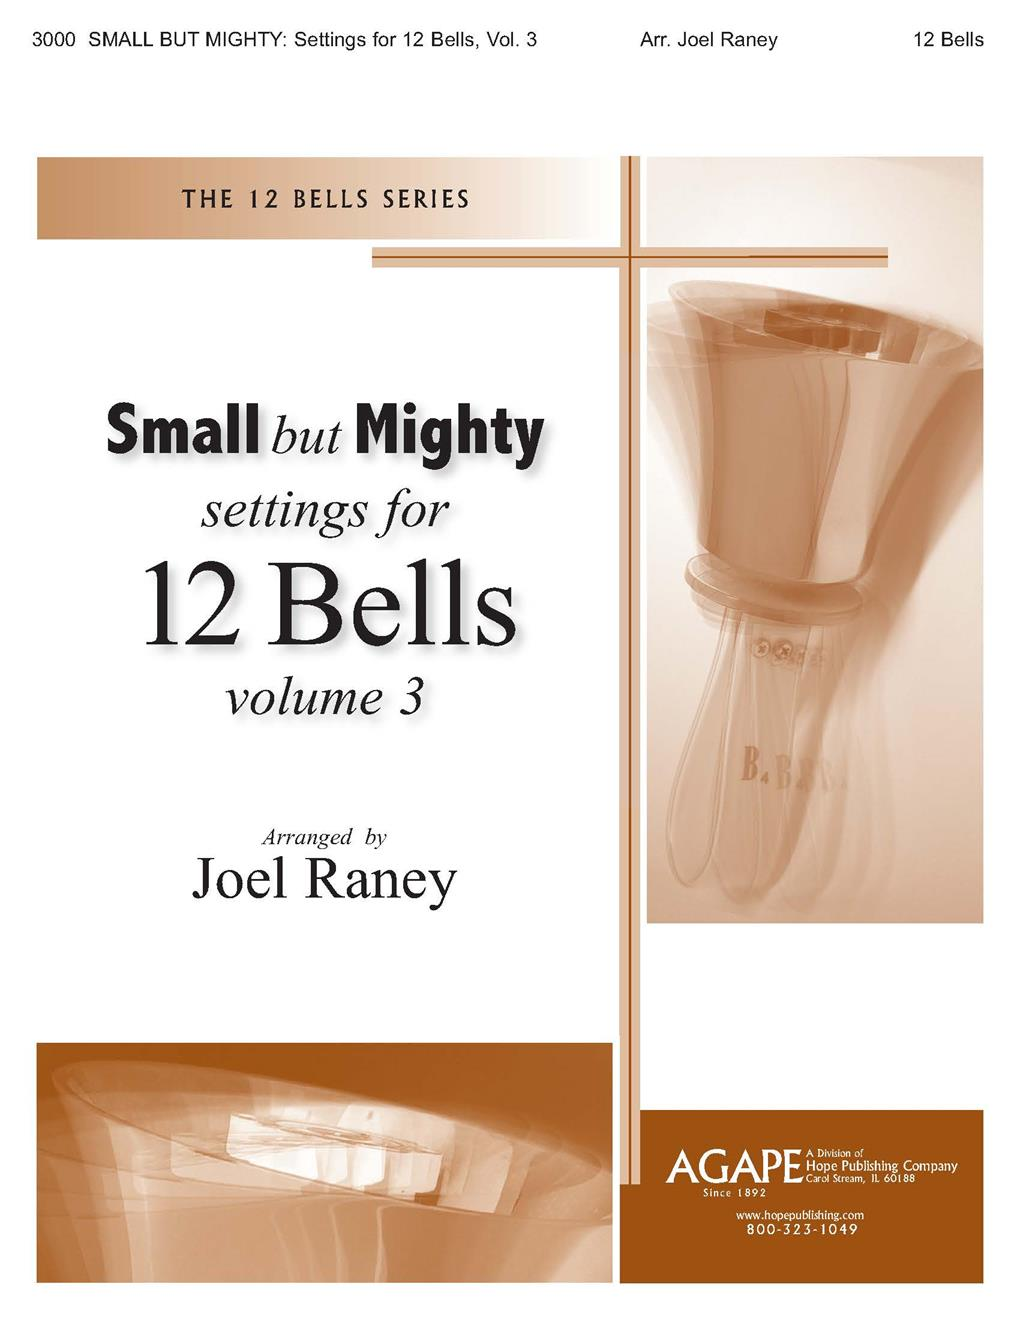 Small But Mighty Vol 3 for 12 Bells - Raney Cover Image